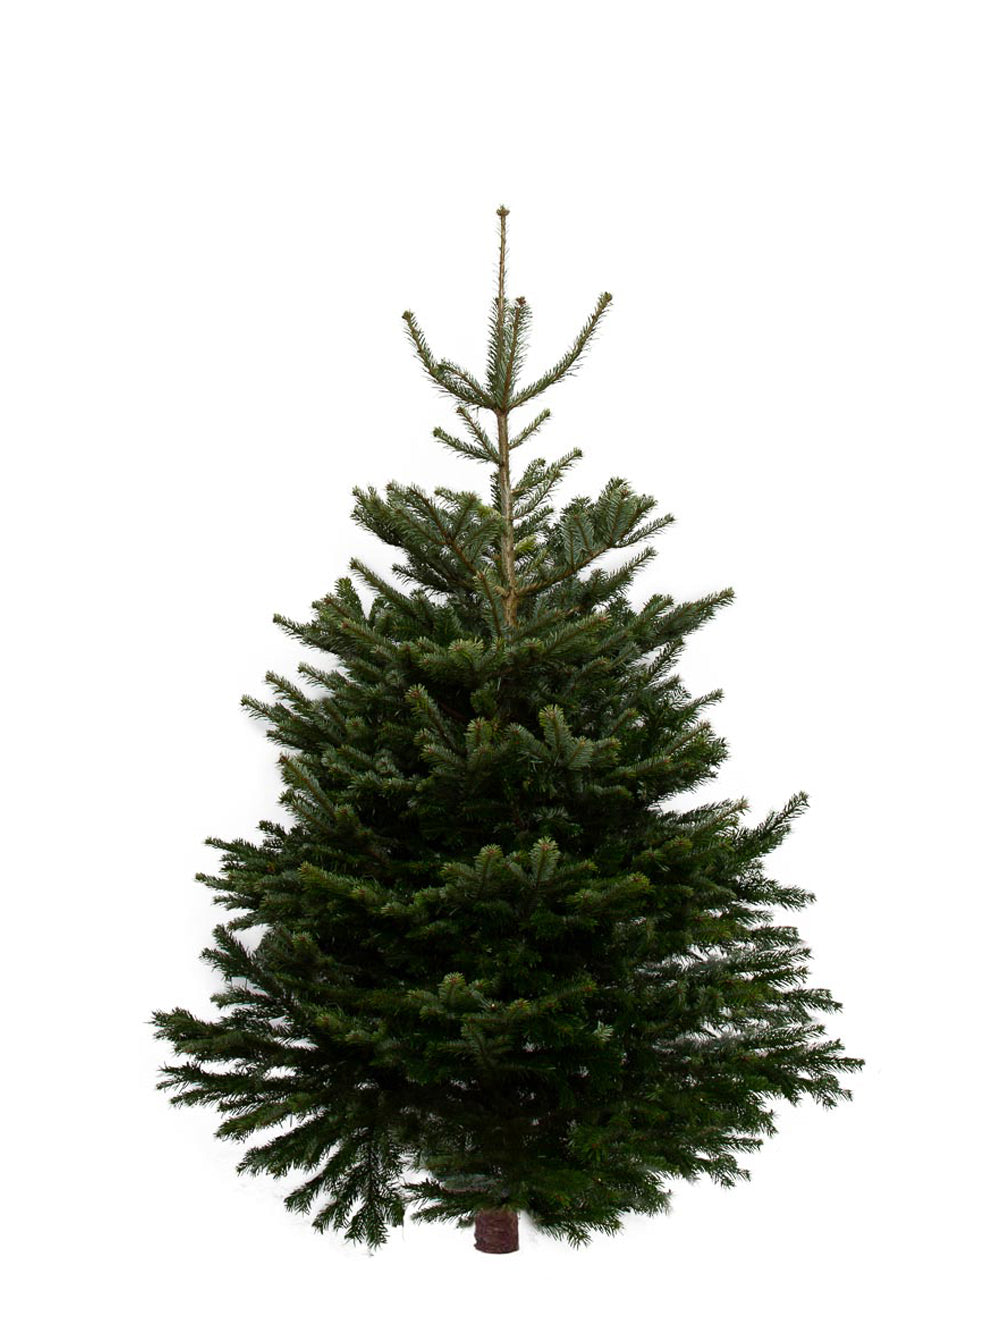 8ft Nordmann Fir Christmas Tree from Pines and Needles